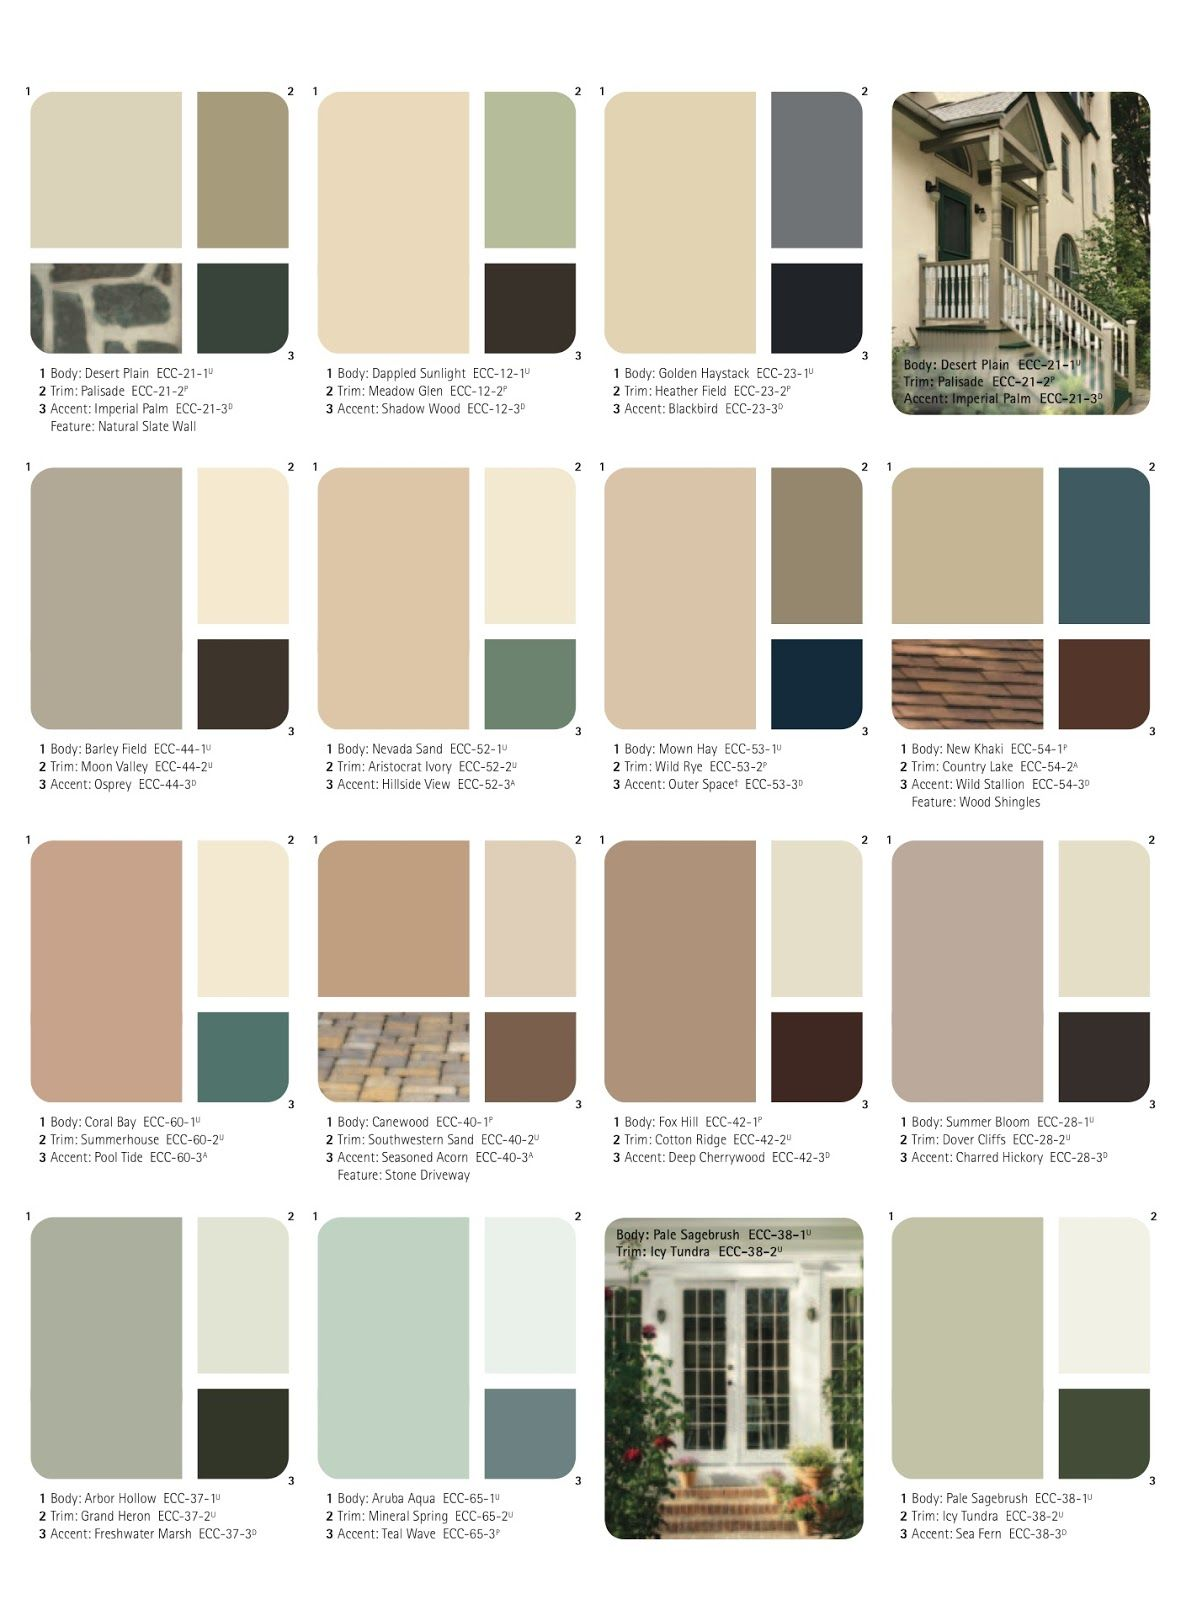 2017 Exterior Shutter And Door Paint Schemes Record The Colors Here For My Future Reference